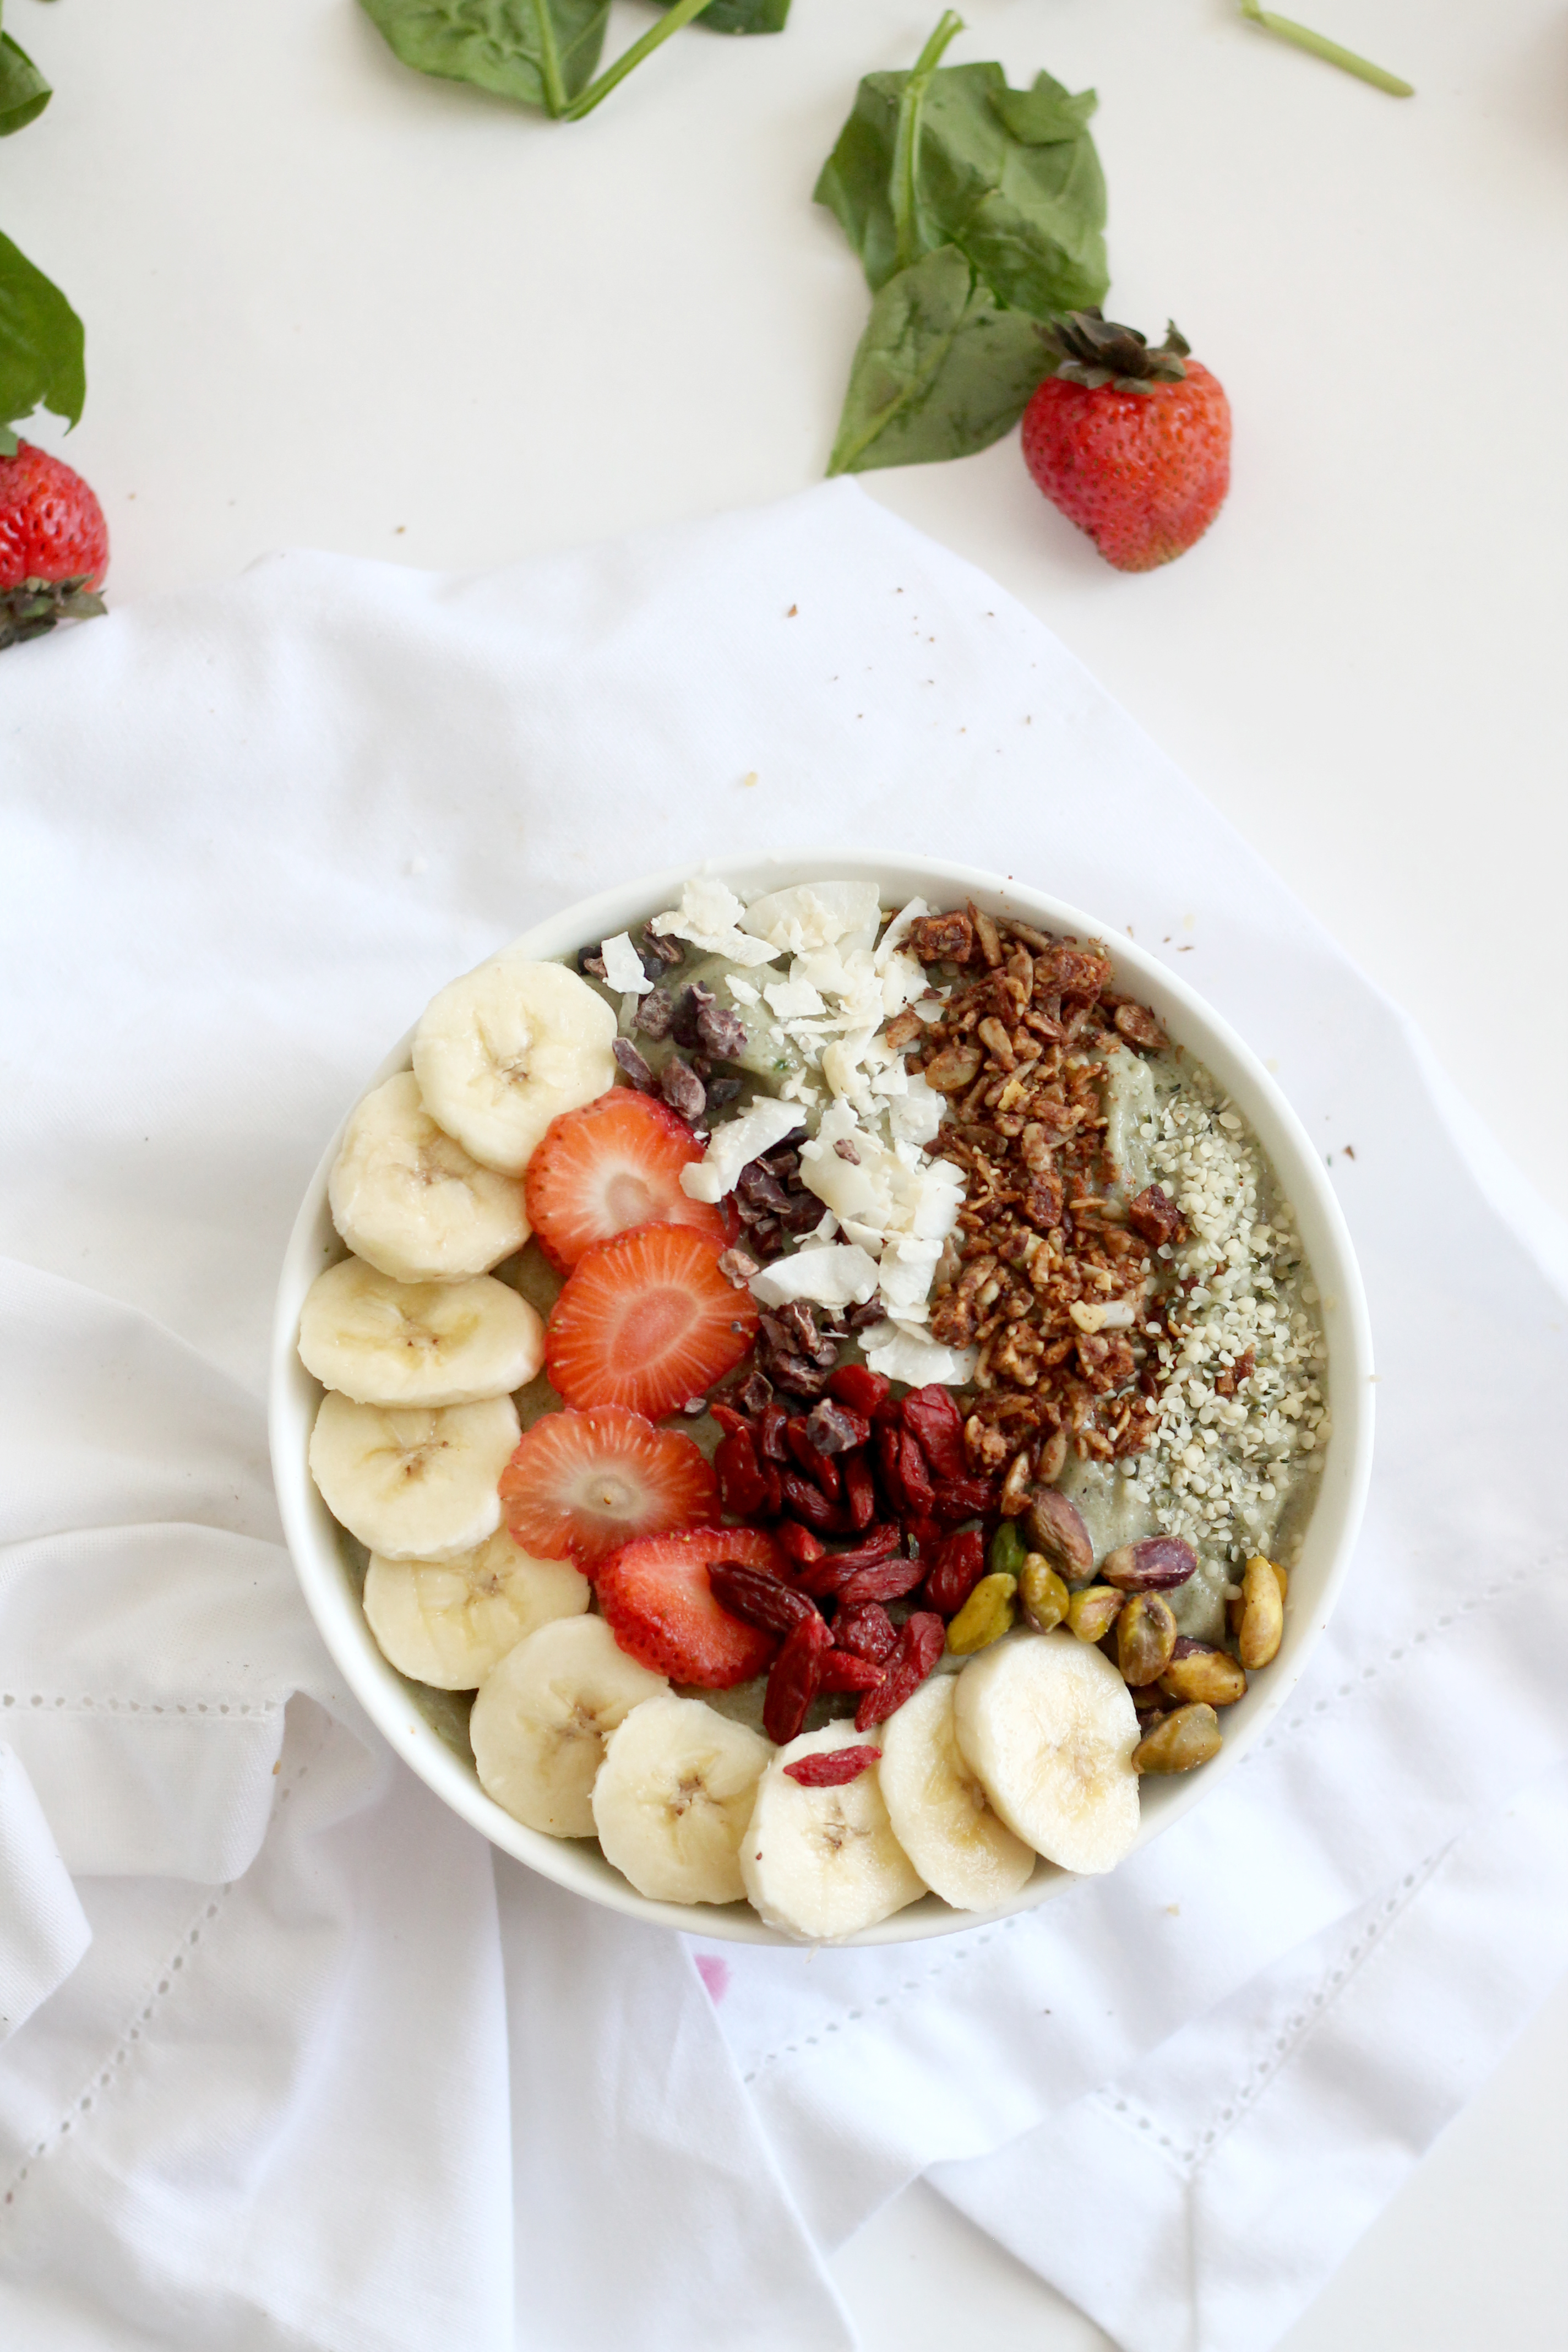 These tips and tricks should help you create the PERFECT smoothie bowl! Learn all about toppings, how to make it thick, what to include in it, and more.